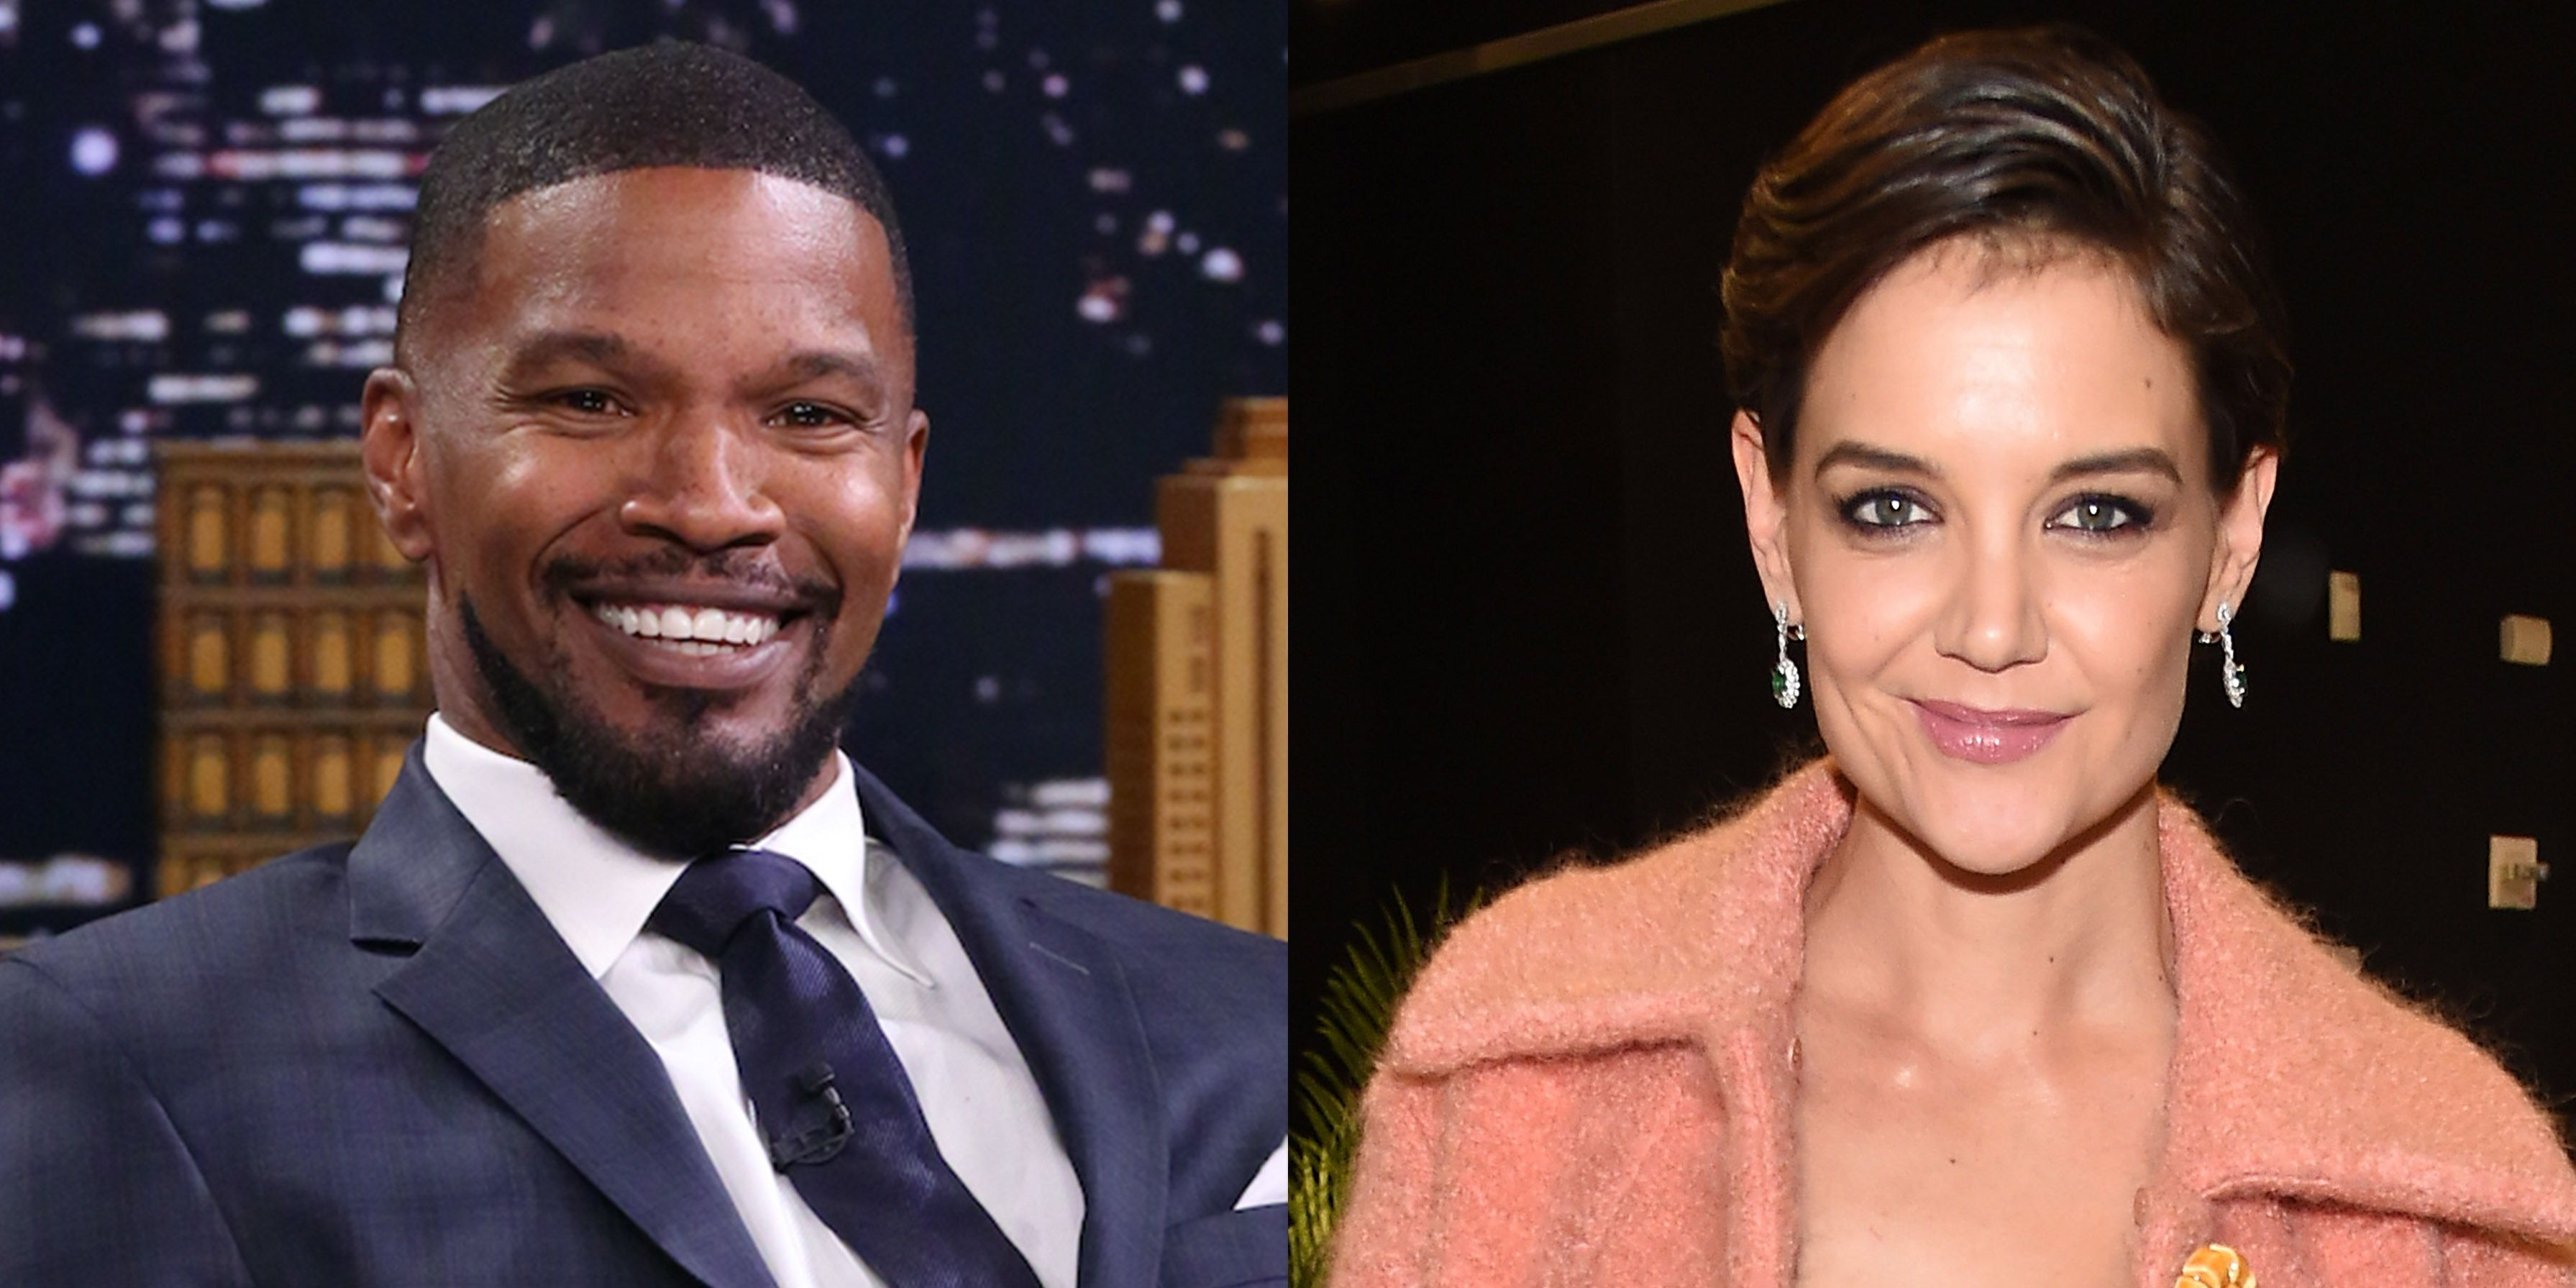 Katie Holmes Just Addressed Her Relationship With Jamie Fo For The First Time